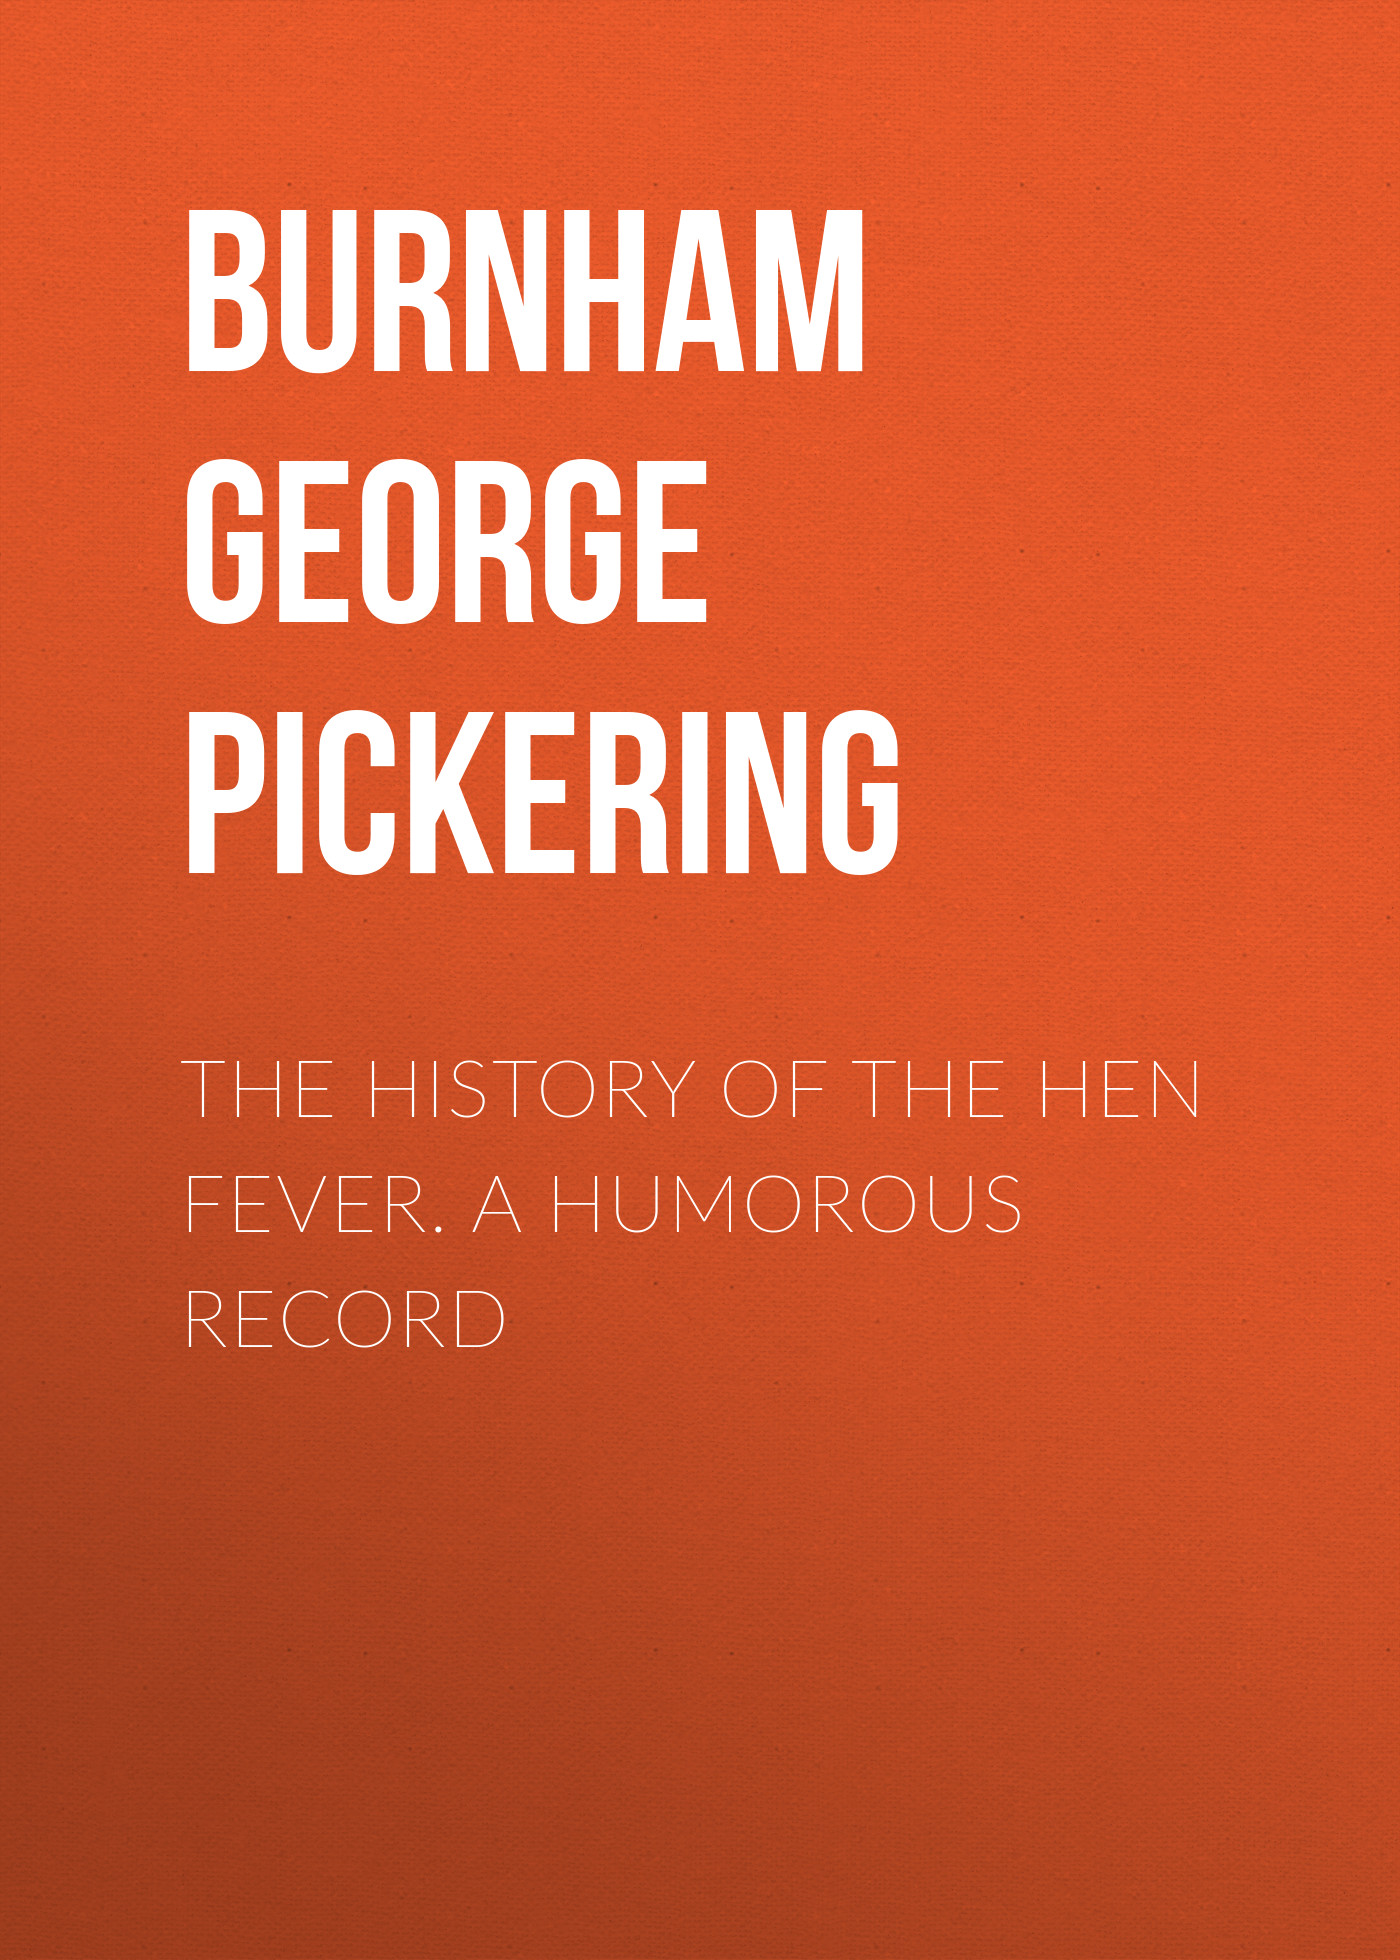 Burnham George Pickering The History of the Hen Fever. A Humorous Record тонер картридж sharp sharp mx23gtba для mx 1810 2010 2310 3111 черный